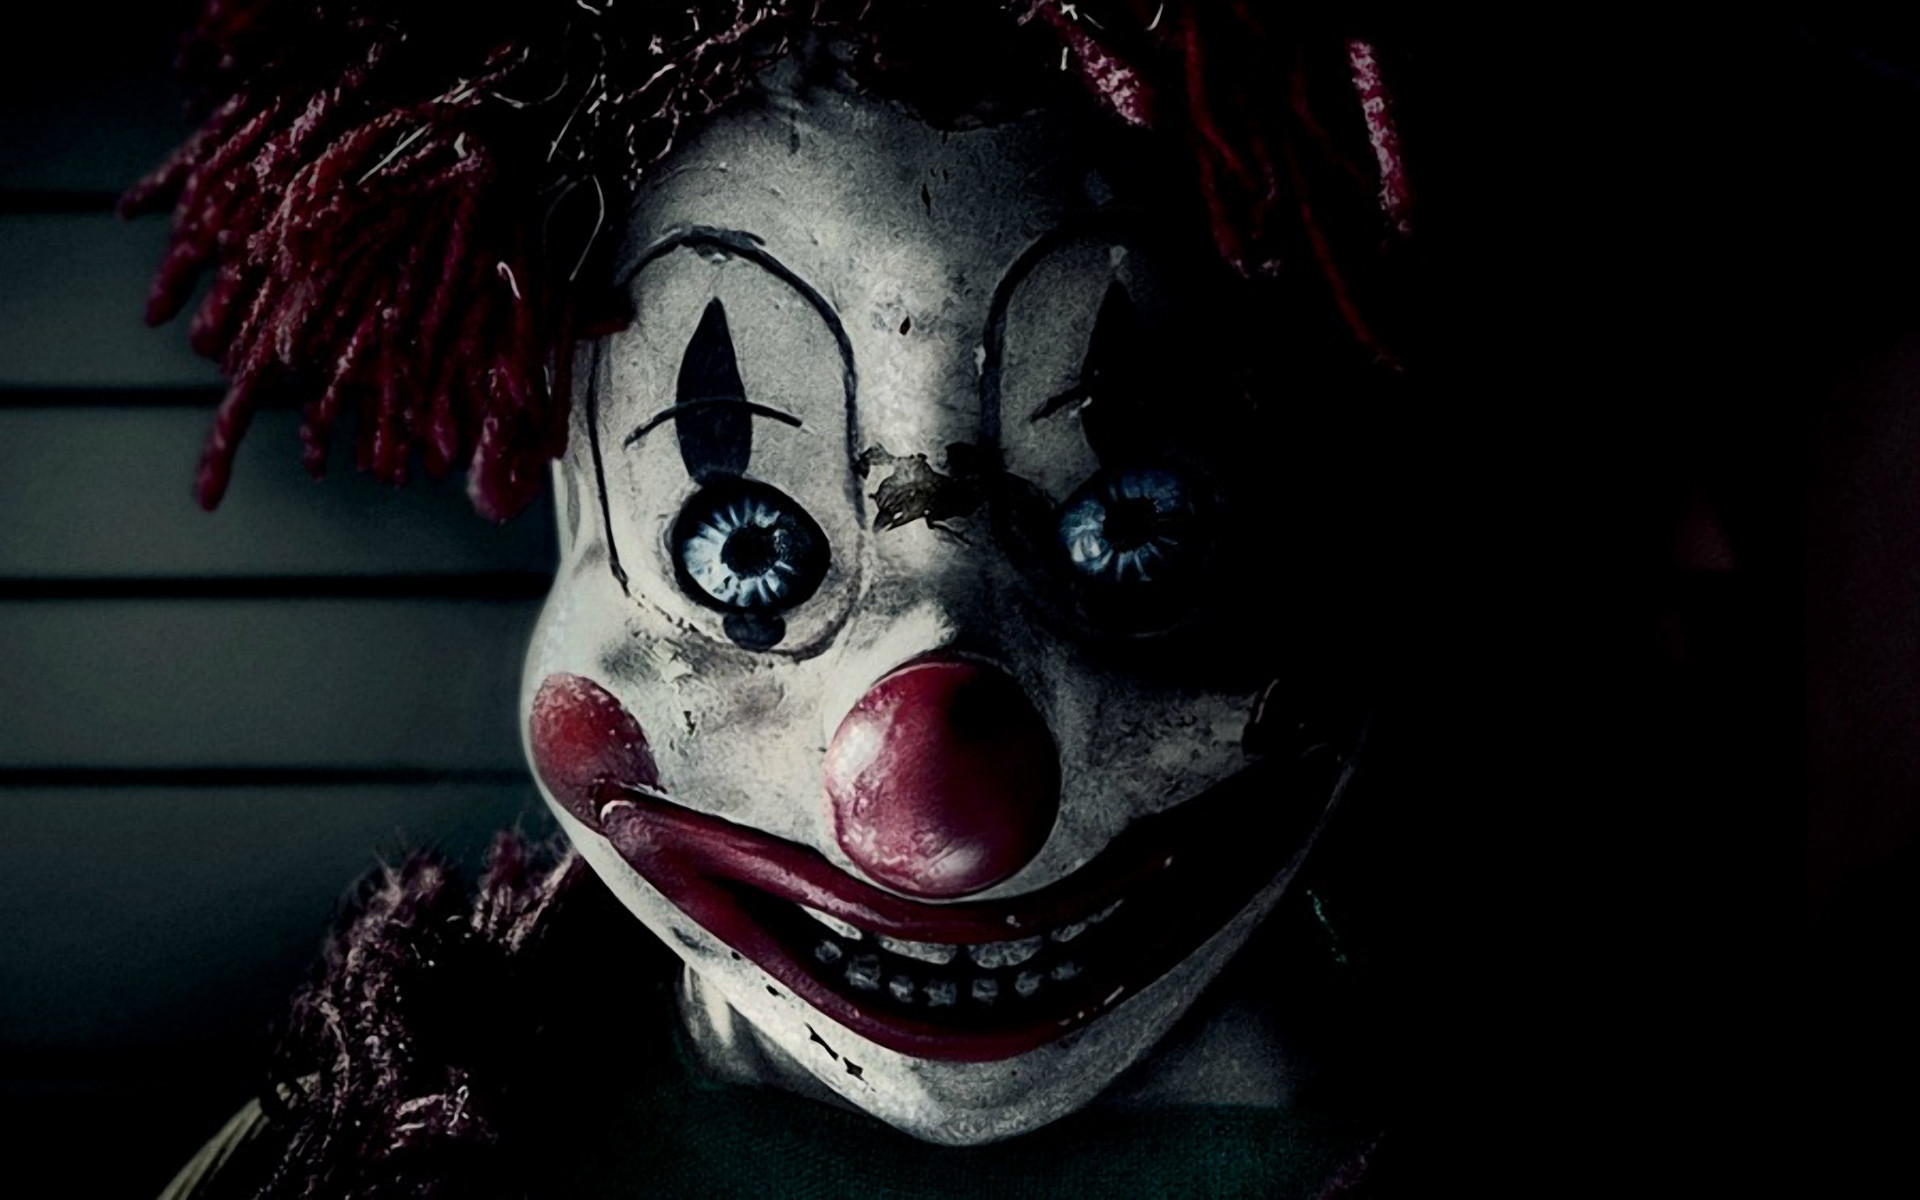 2015 Horror Movie HD Wallpaper. Search more Hollywood Movies & Films